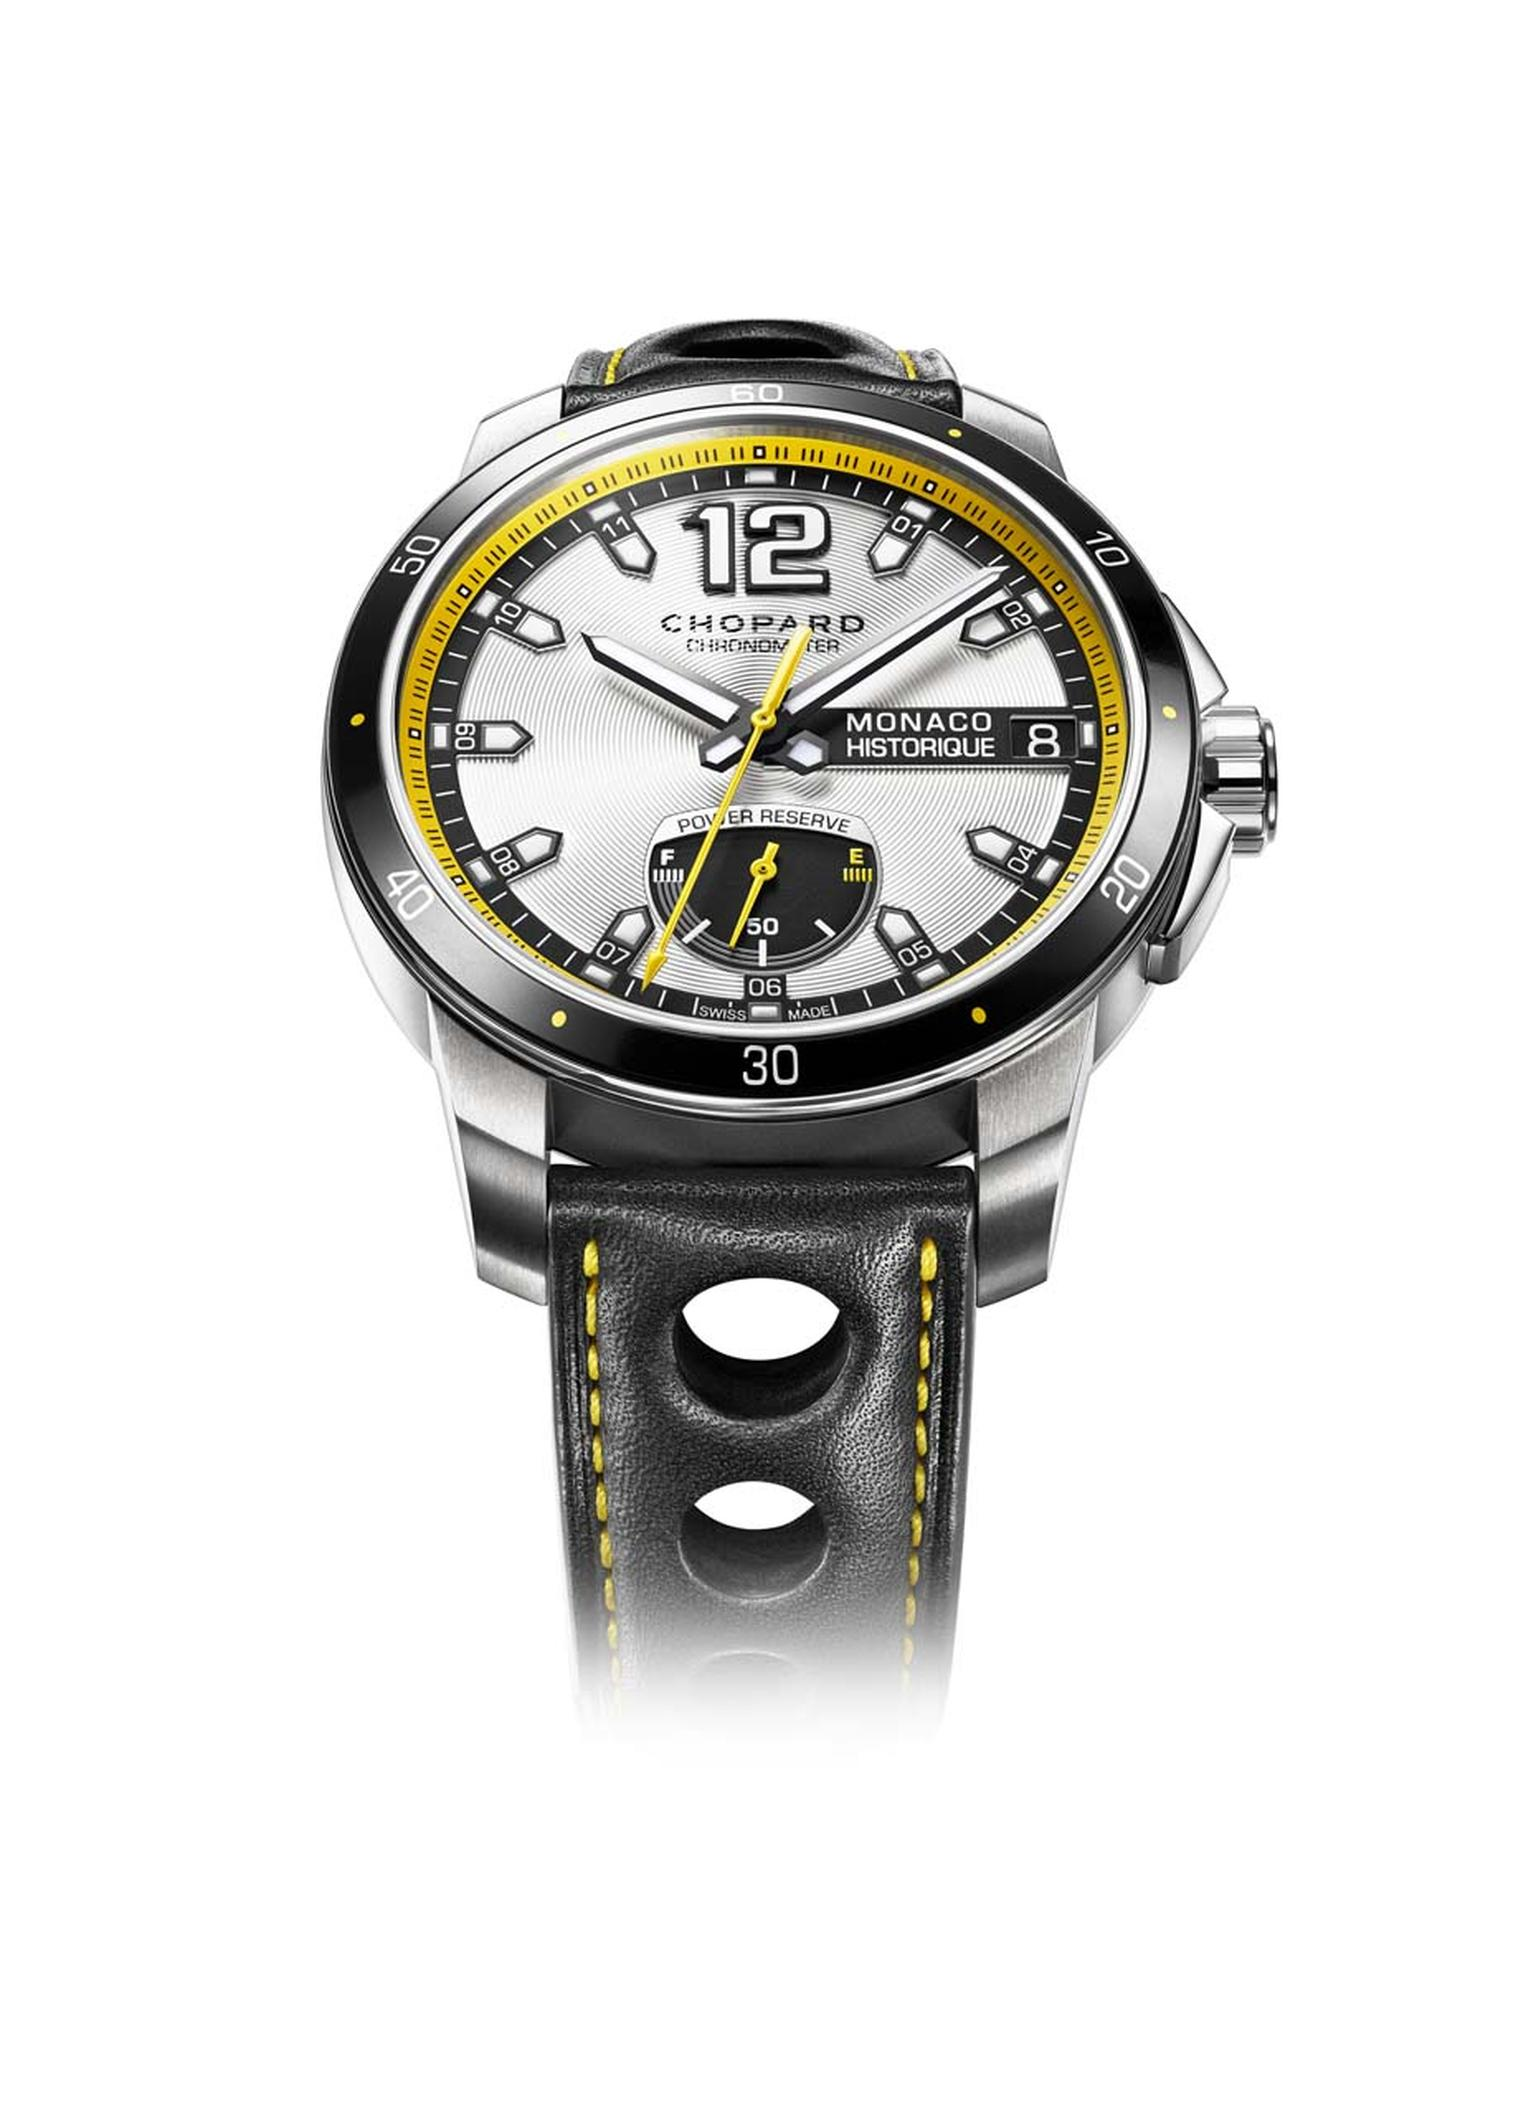 Chopard's sporty Grand Prix de Monaco Historique watch collection includes this racy GPMH Power Control watch, with a power-reserve indicator in the form of a petrol gauge at 6 o'clock. The powerful engine is a self-winding Chopard COSC-certified chronome